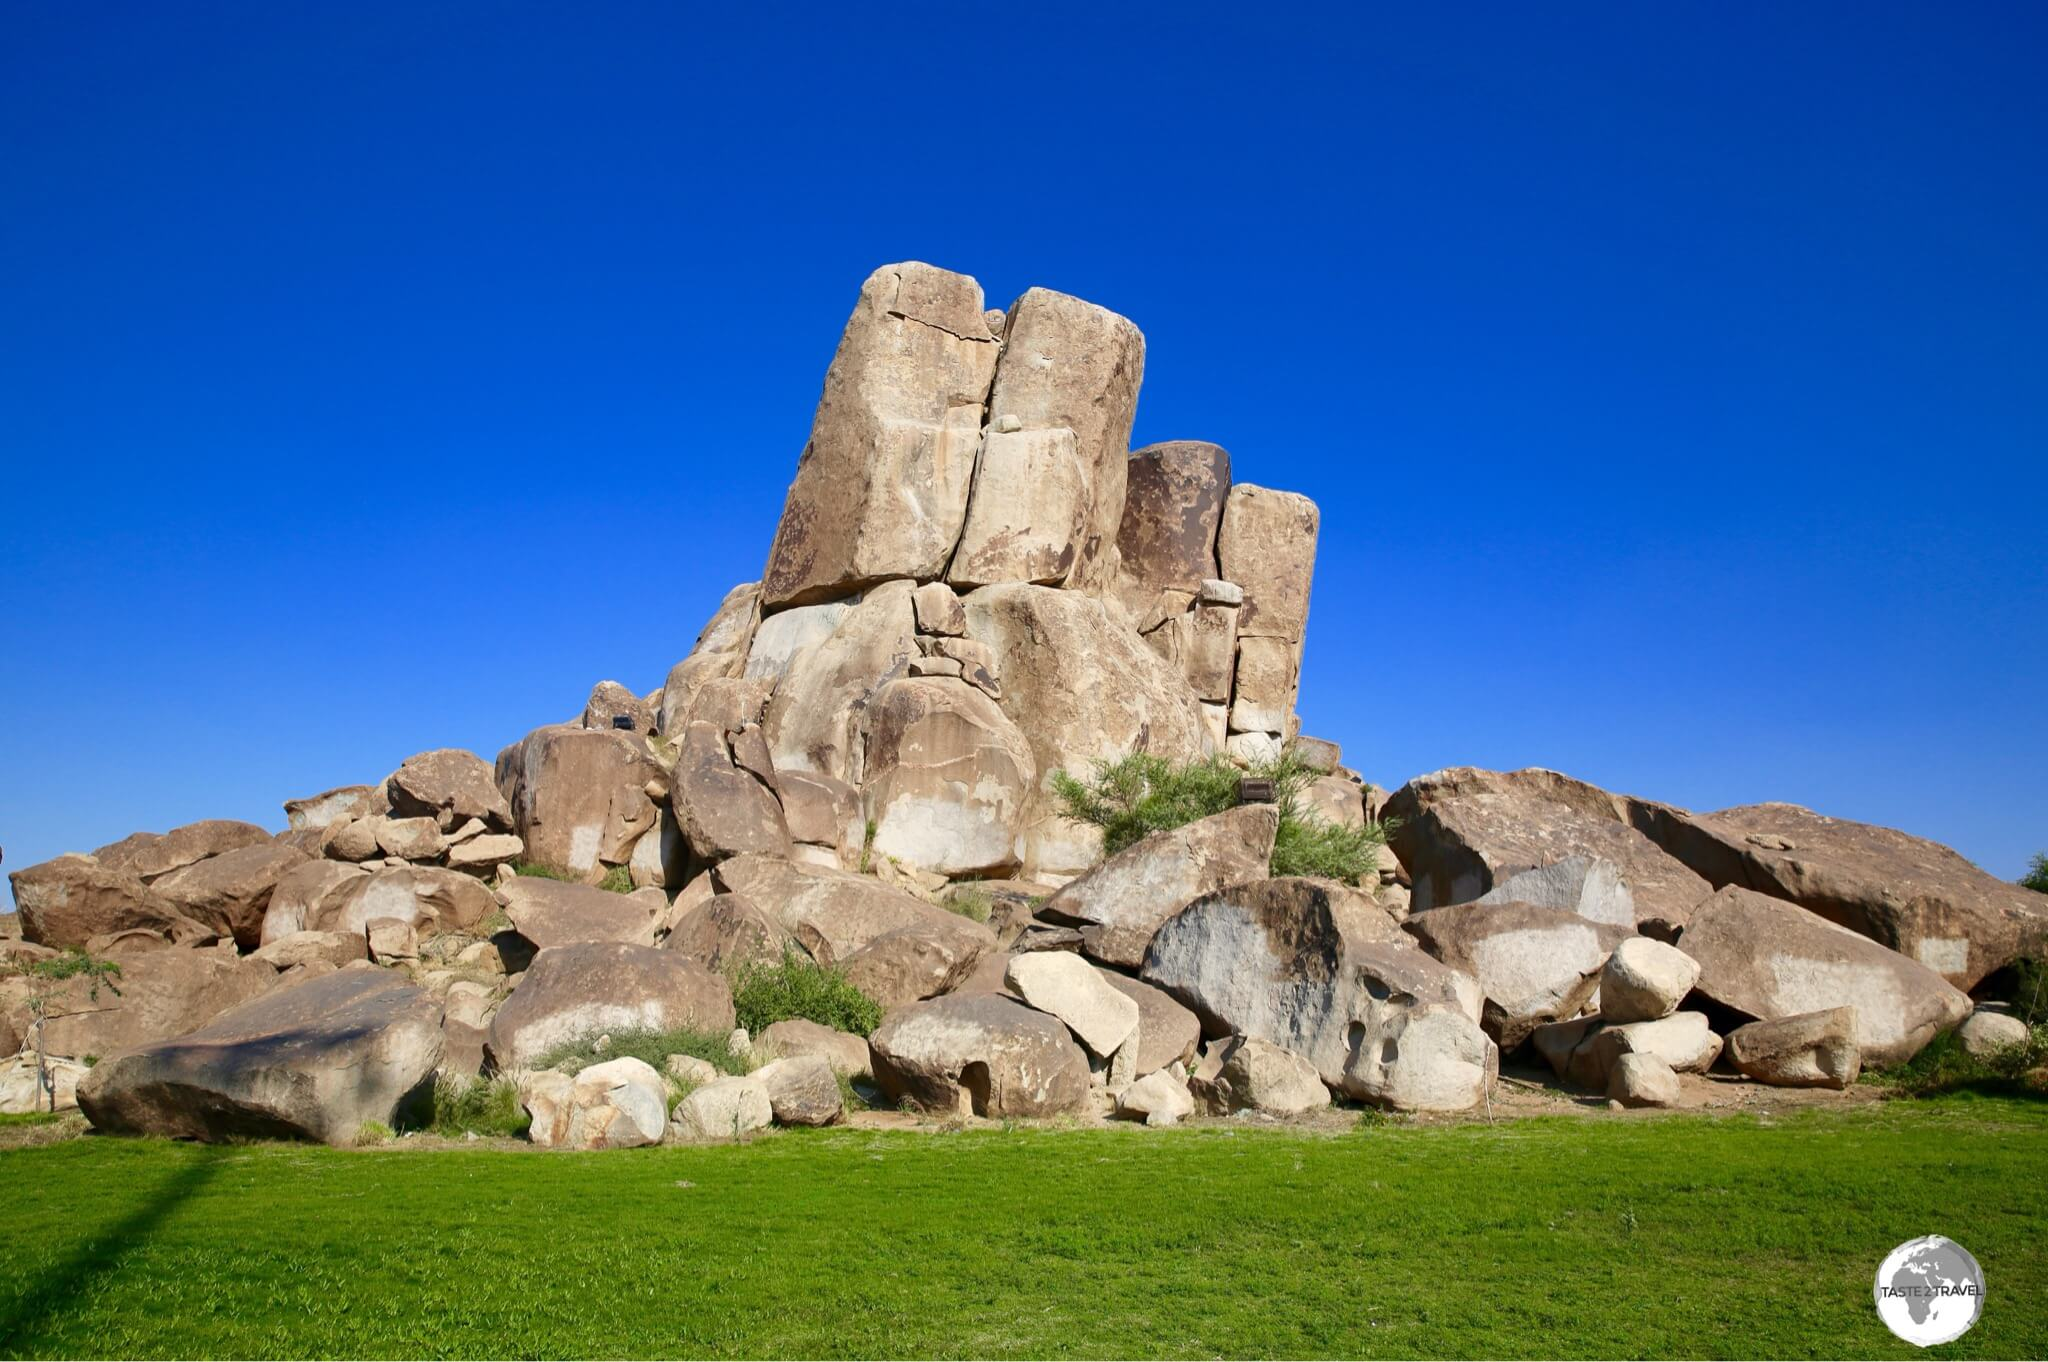 Al Rudaf Park in Taif is renown for its large piles of granite boulders which are a landscape gardener's dream.